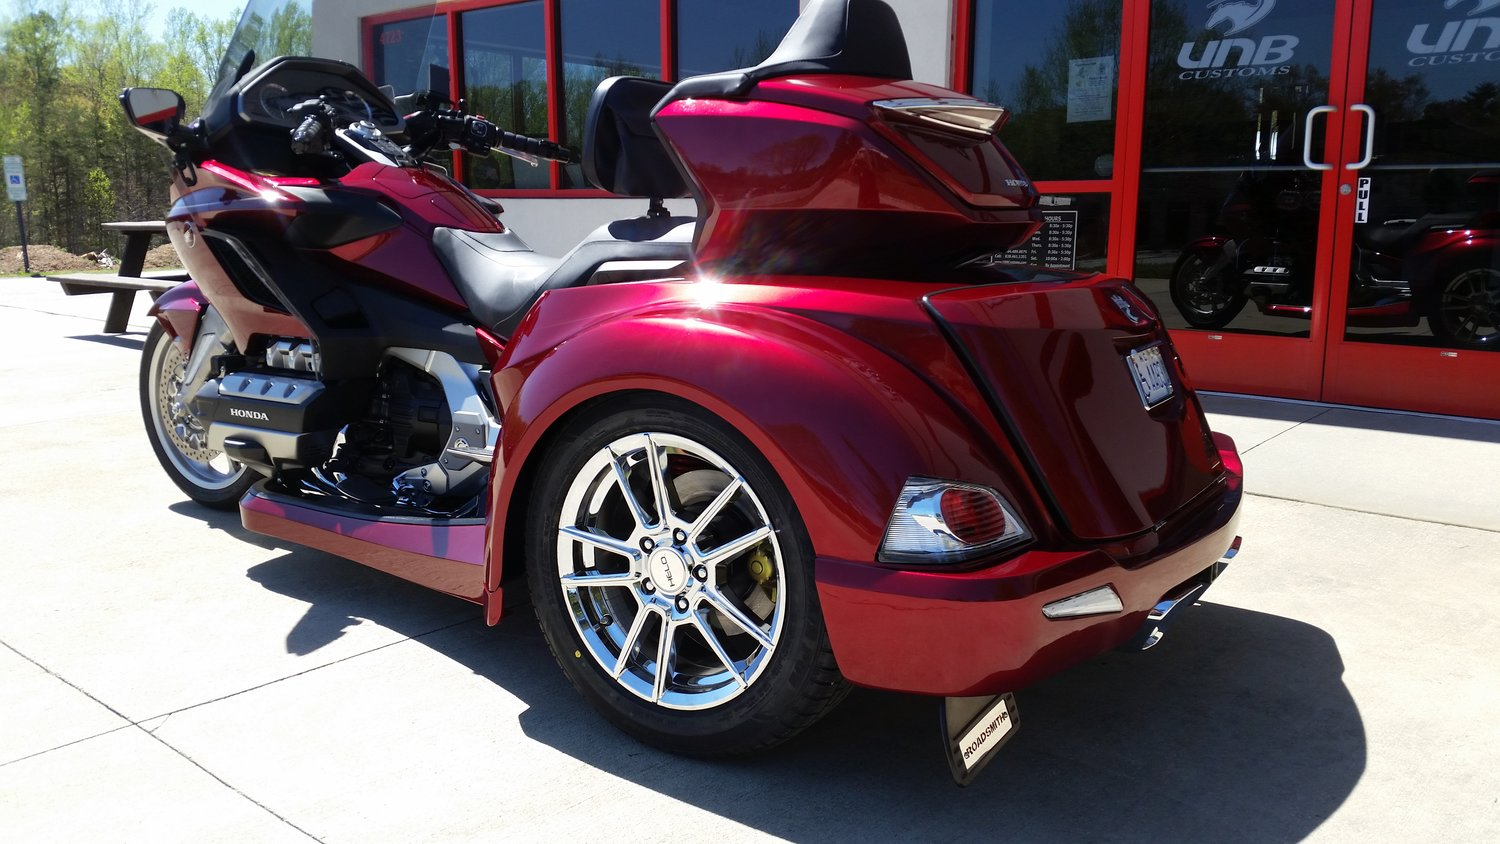 Goldwing 1800 Trike Red